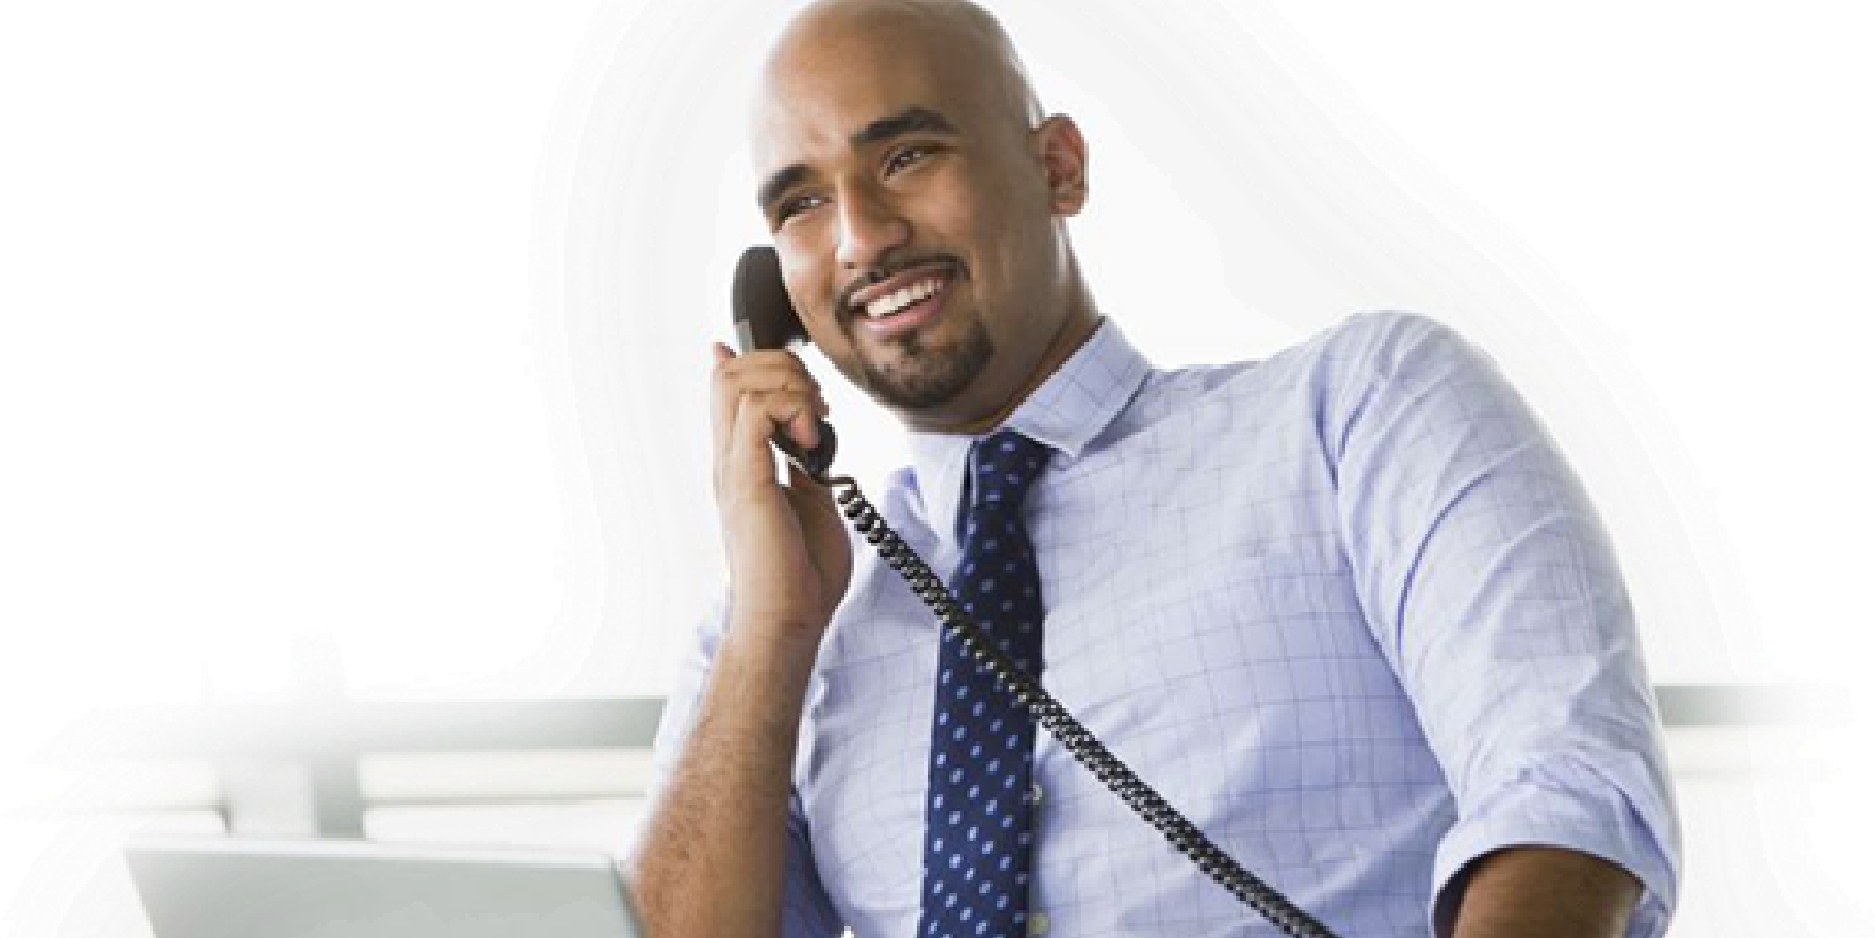 How to Leverage Social Media to Warm Up Cold Calls